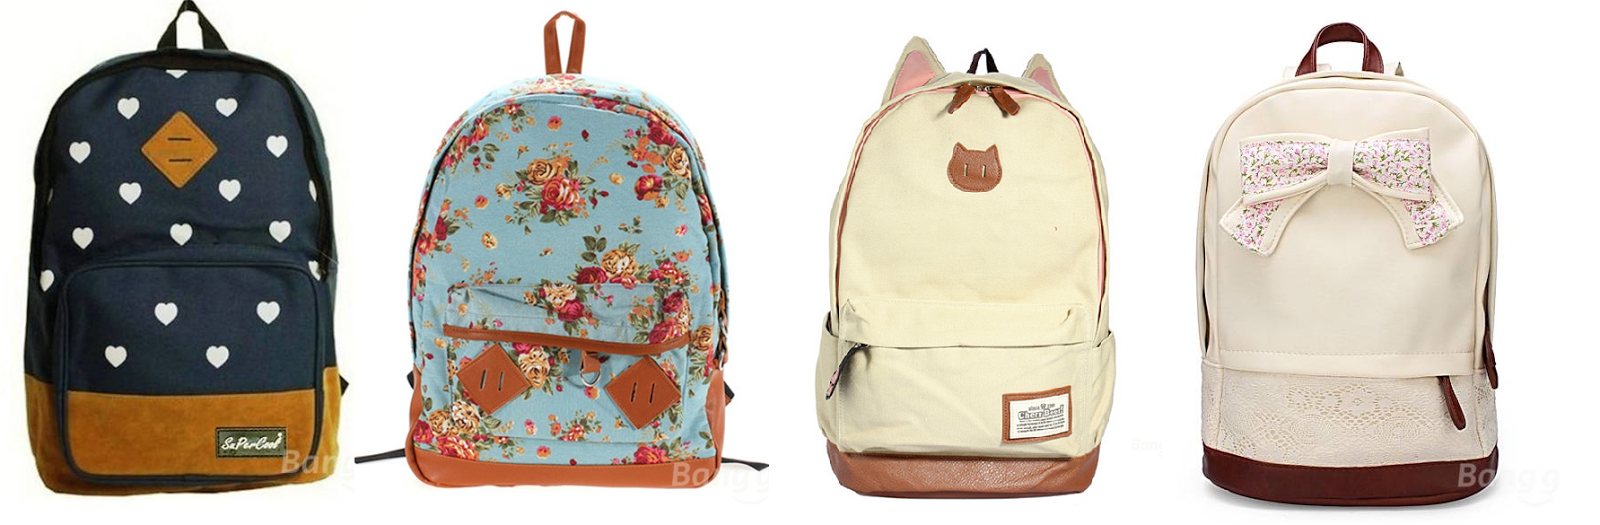 Cute Back To School Backpacks PQwGPEVL